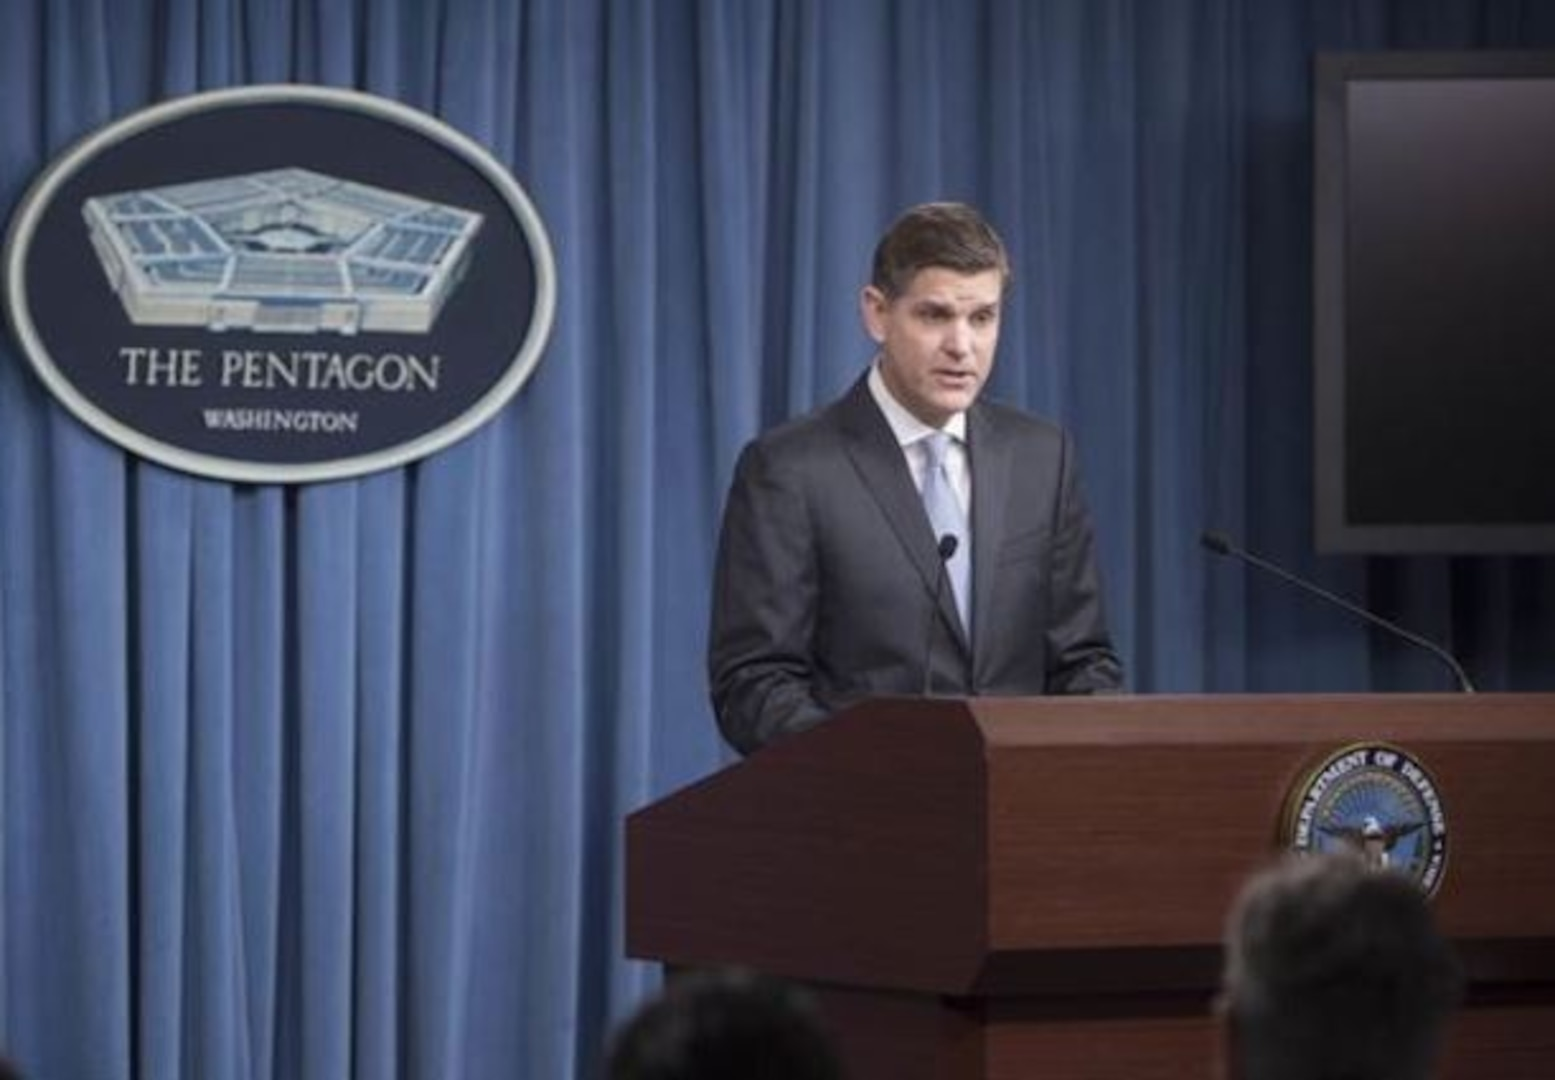 Pentagon Press Secretary Peter Cook addresses reporters' questions during a briefing at the Pentagon, Feb. 16, 2016. (DoD photo by Petty Officer 1st Class Tim D. Godbee)